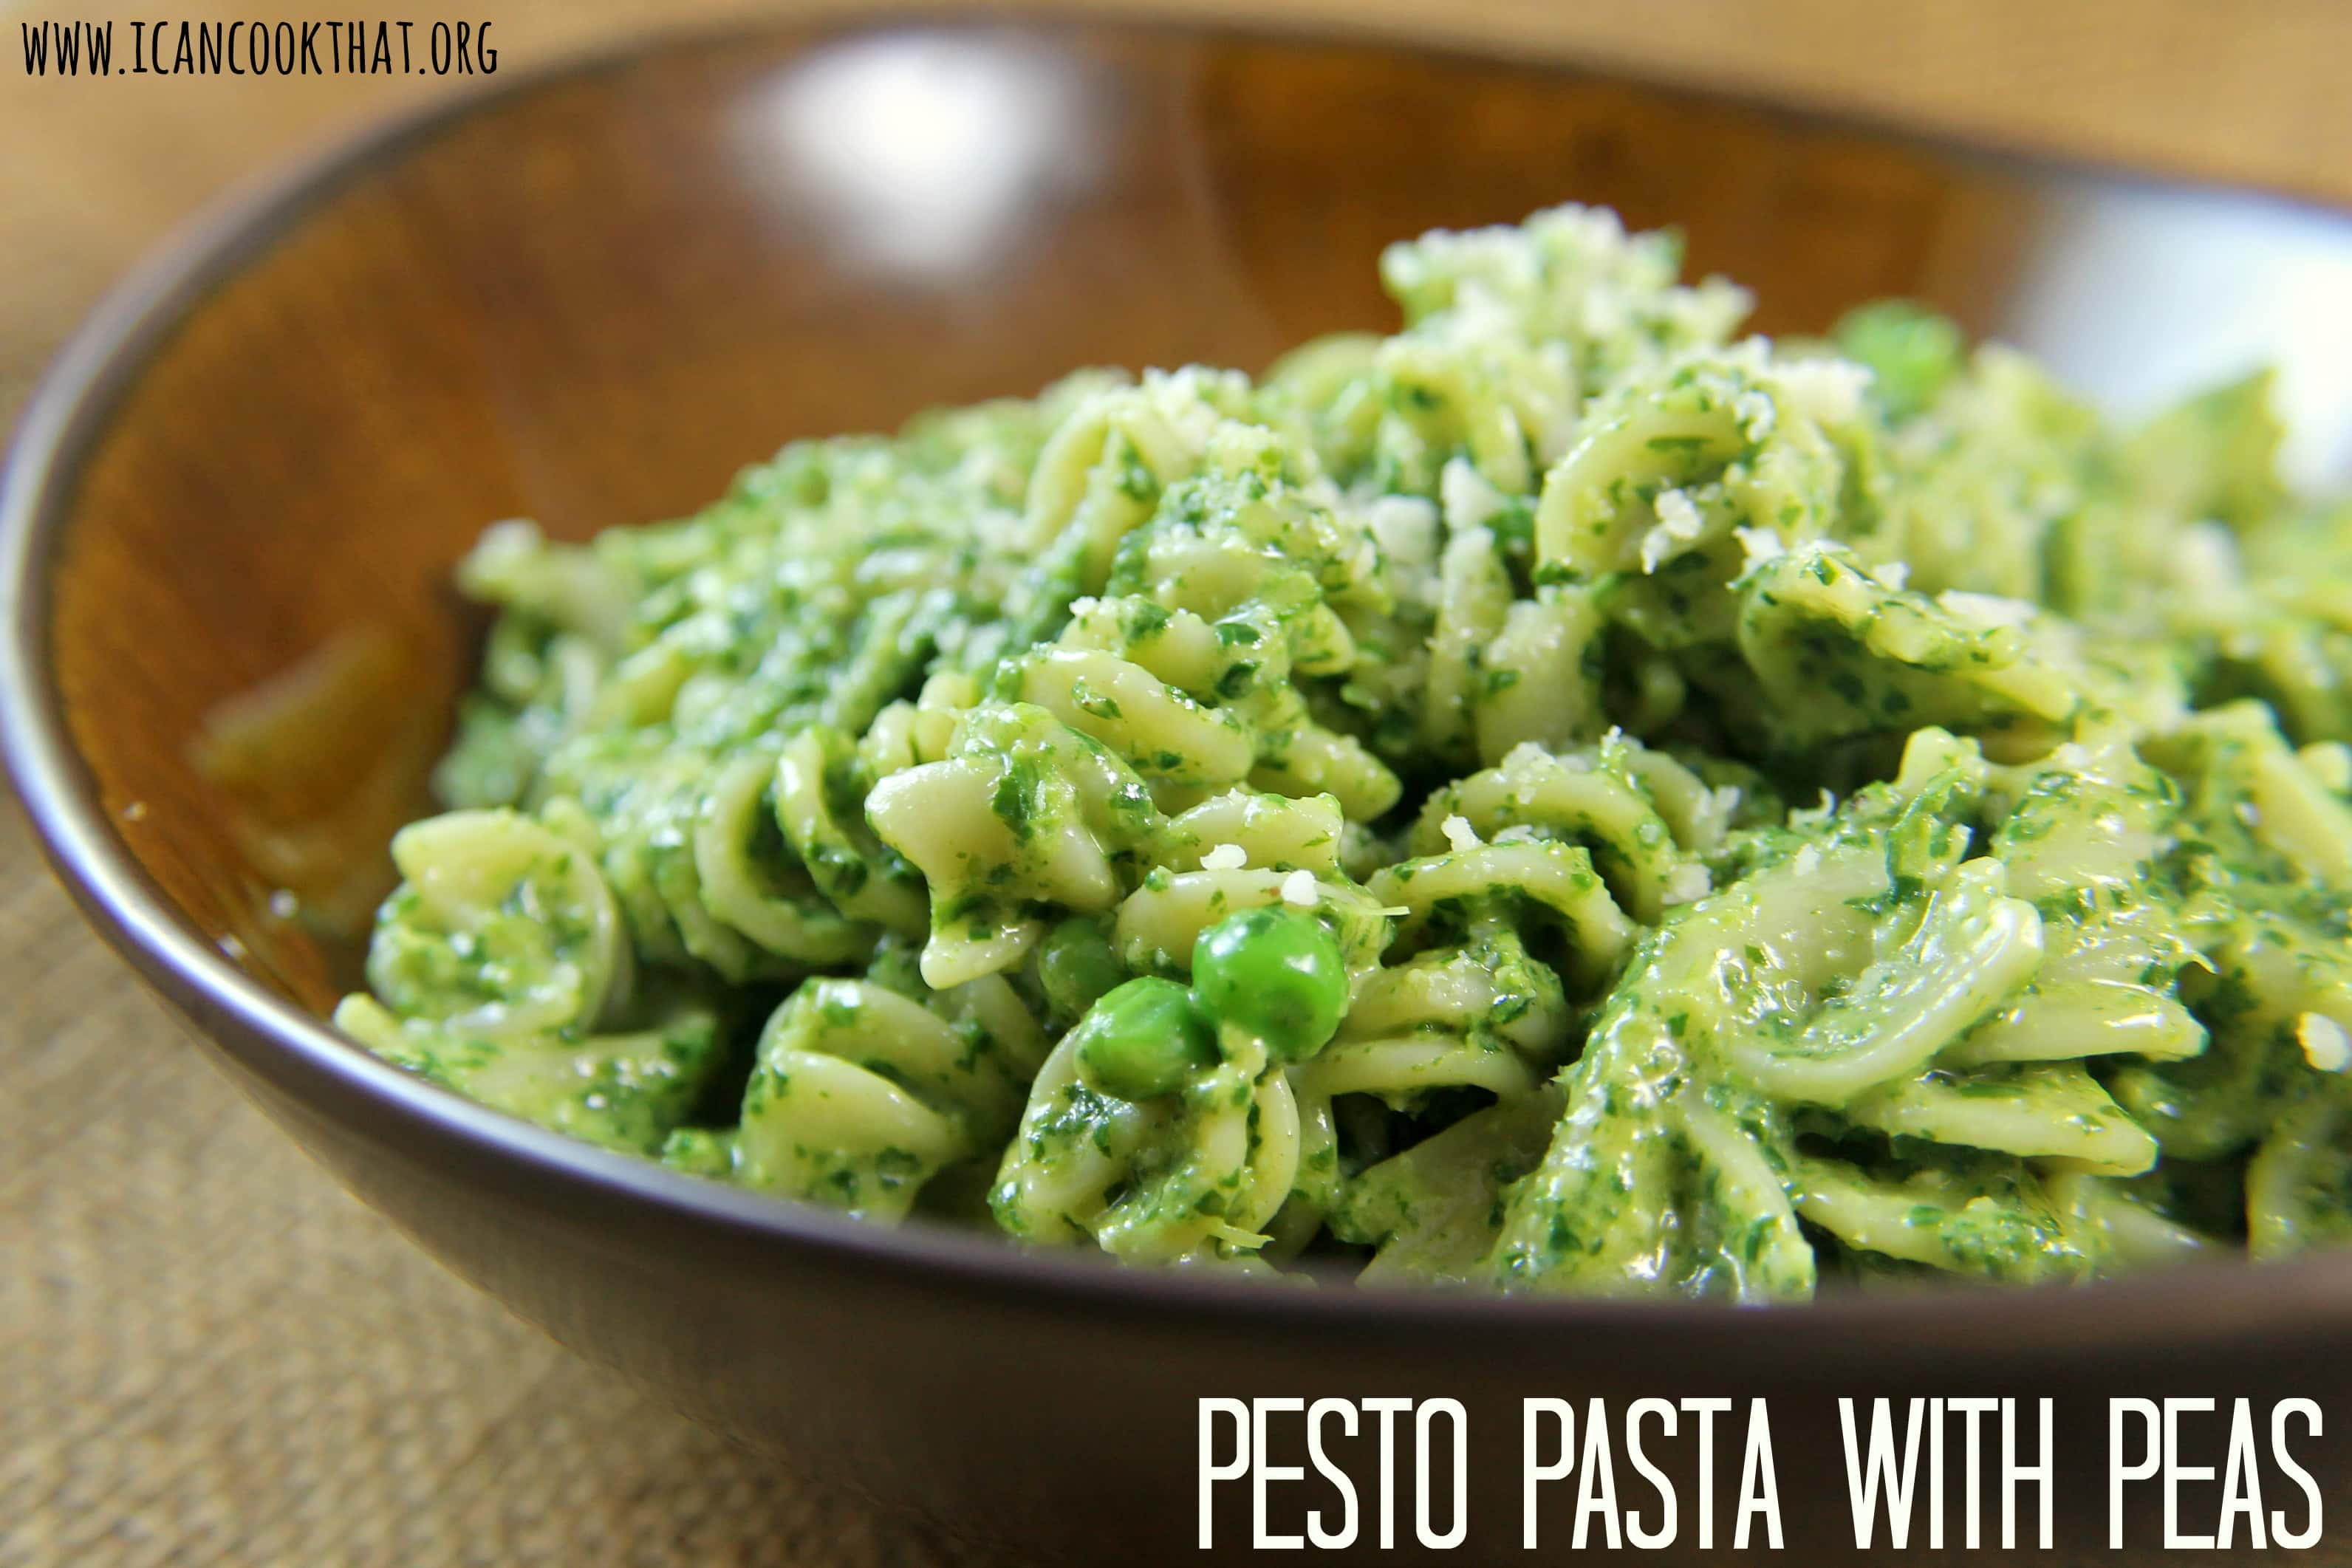 ... pasta salad recipe pasta pesto and peas pasta salad with peas and